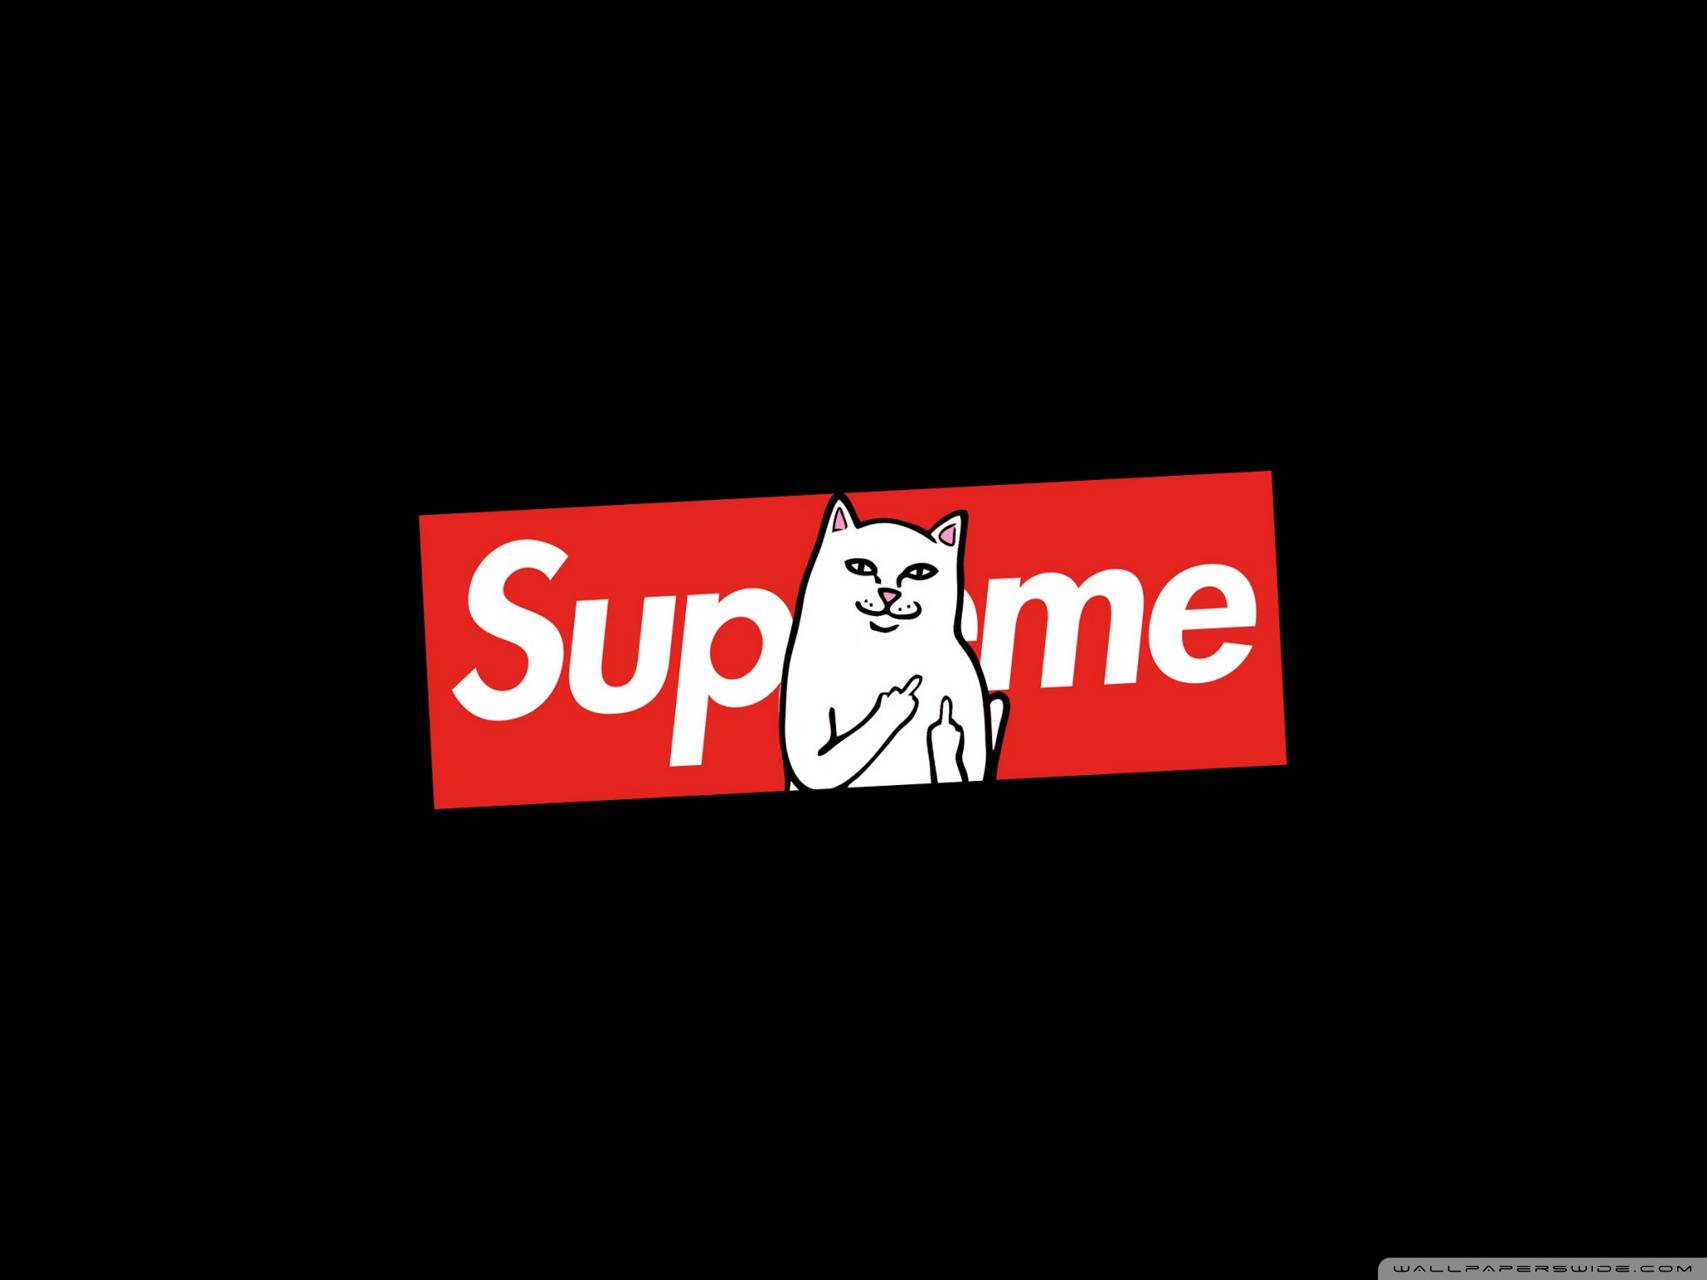 Supreme Wallpaper By Krowely - E7 - Free On ZEDGE™